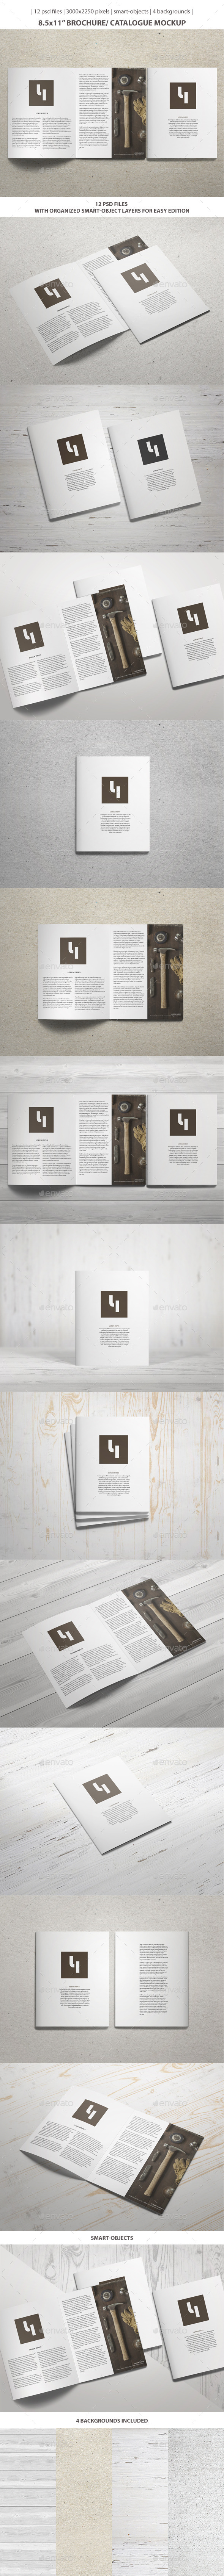 GraphicRiver 8.5x11 Brochure Catalogue Mockup 9801580